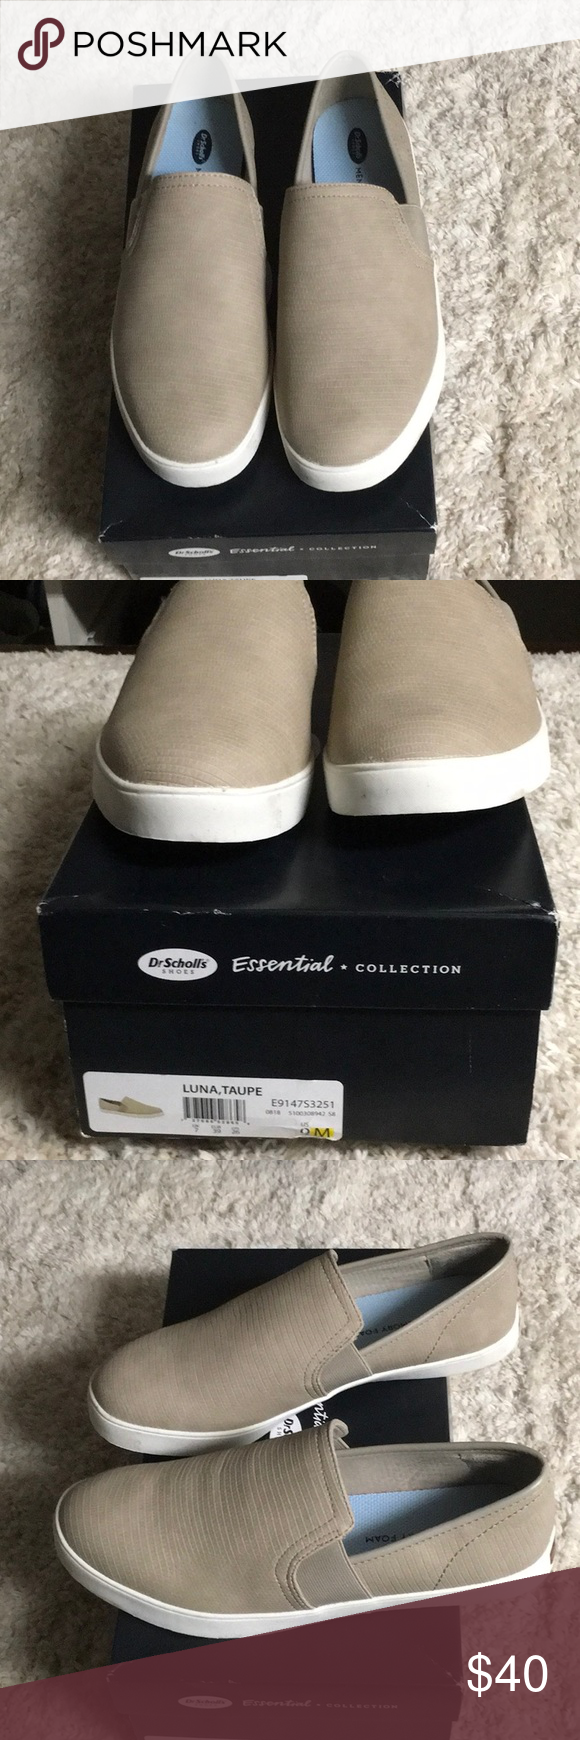 Dr Scholls Luna taupe New in box Dr